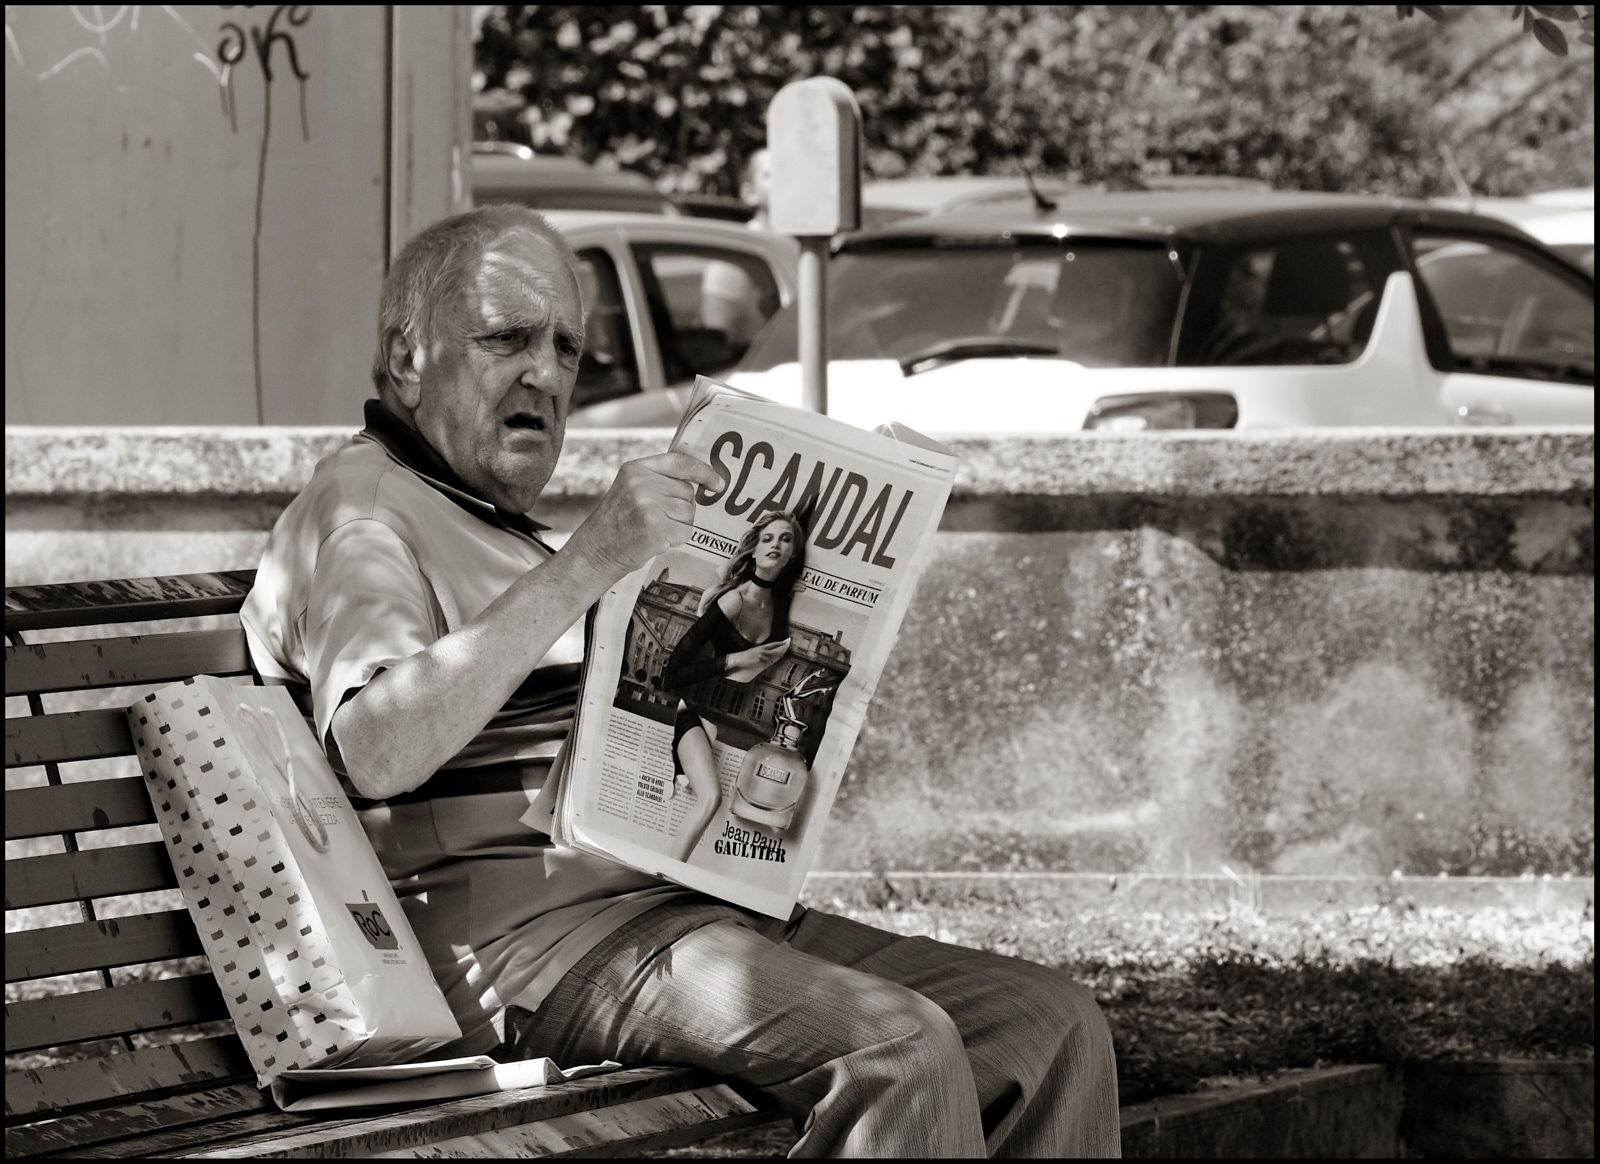 Flabbergasted reading the paper...